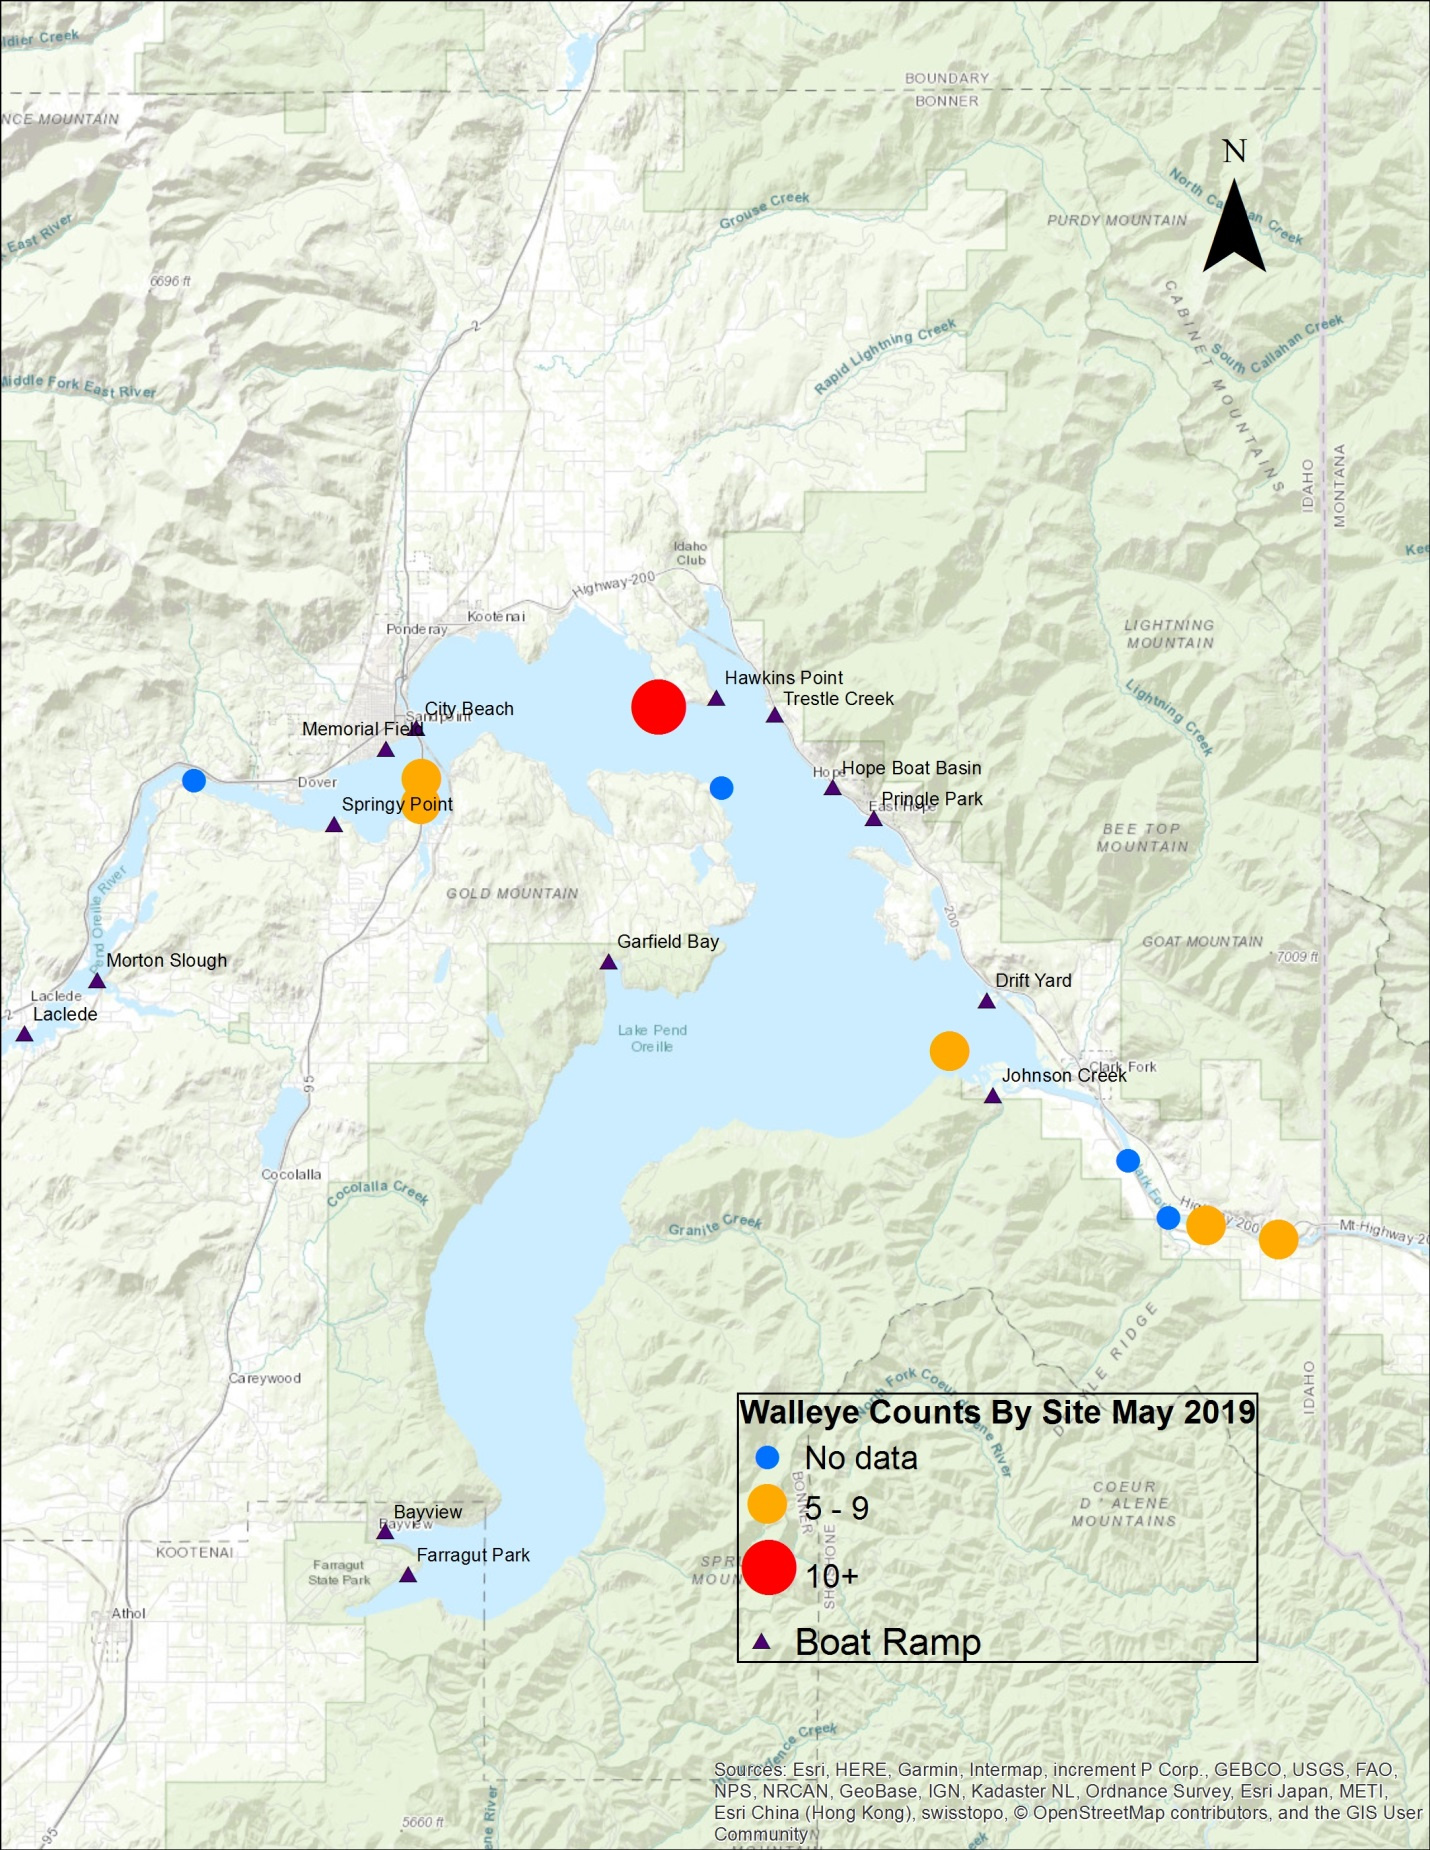 Lake Pend Oreille Walleye Tracking May 19